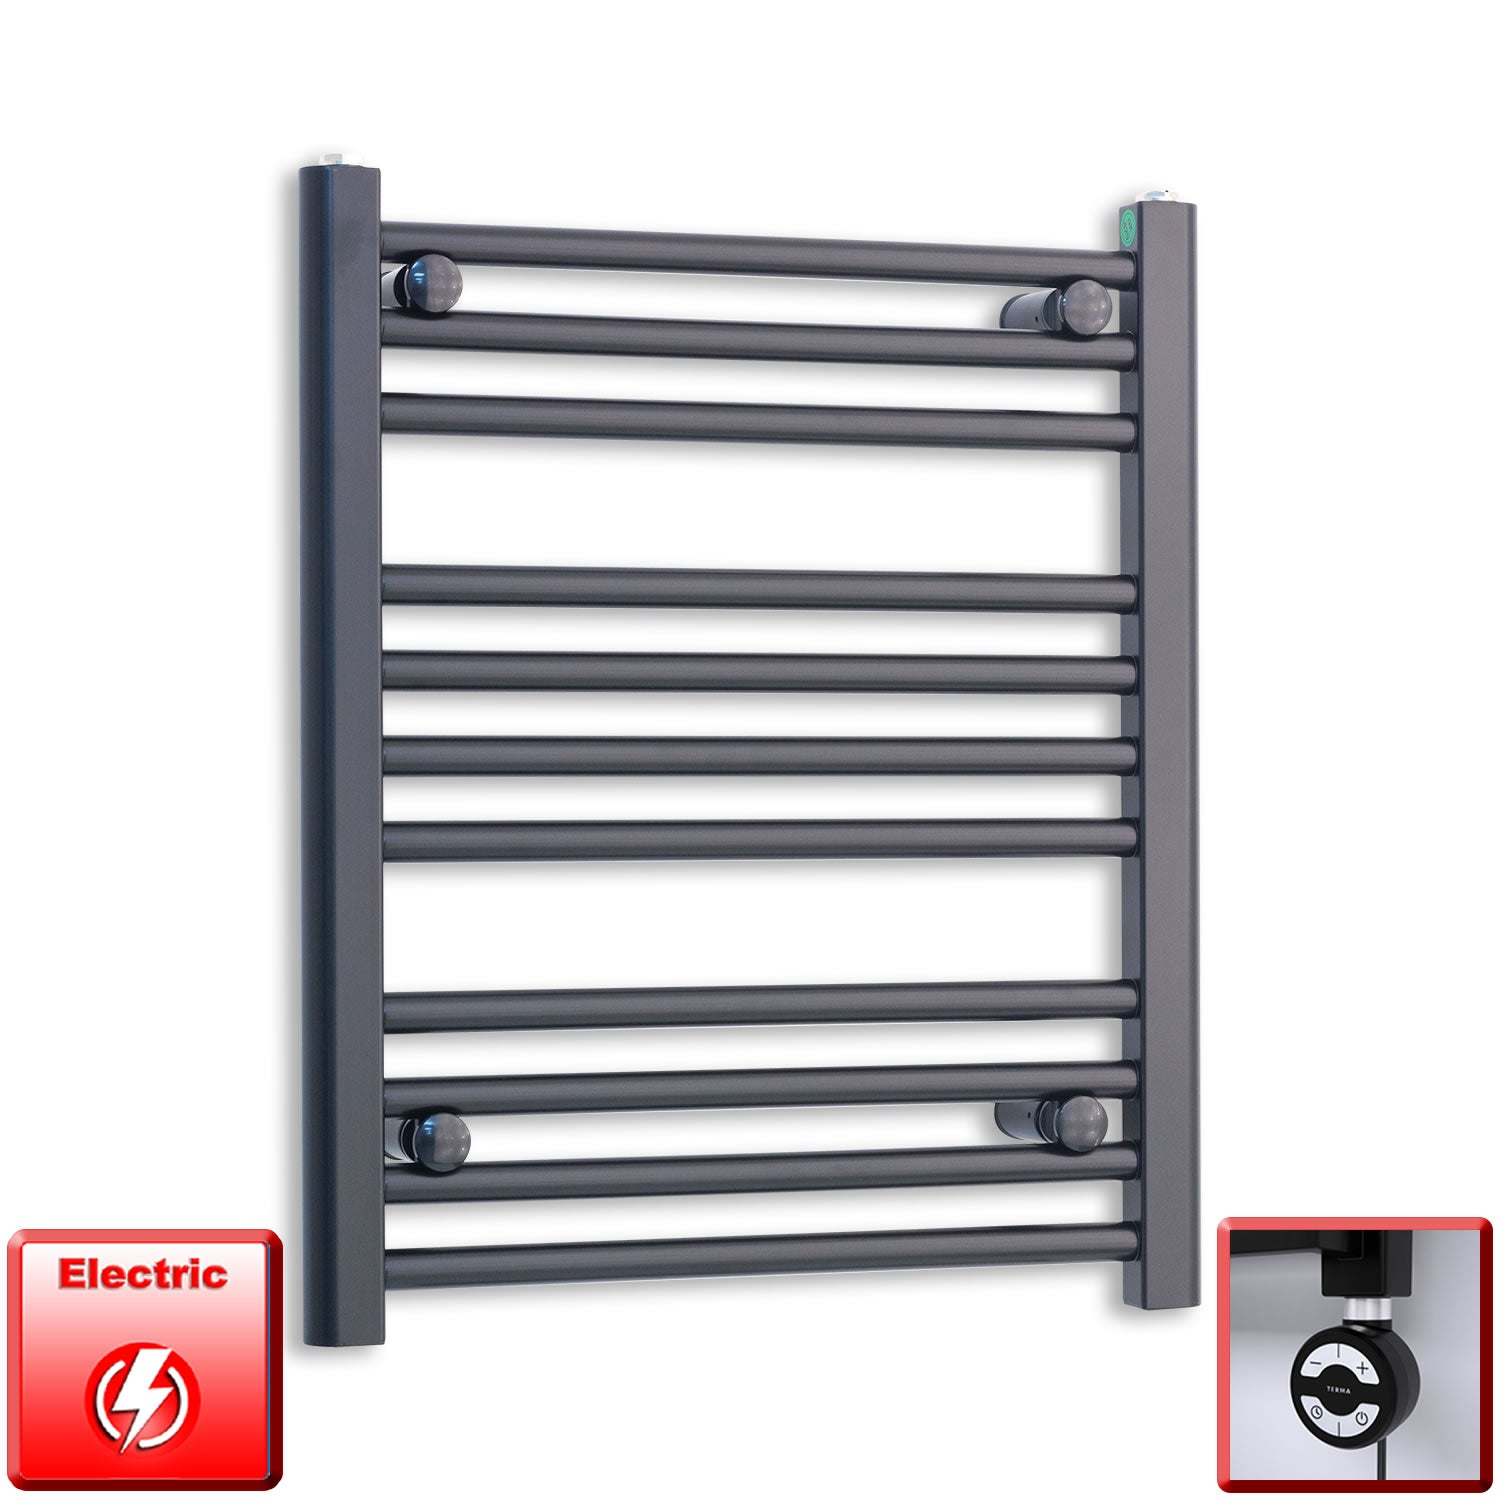 500mm Wide 600mm High Pre-Filled Black Electric Towel Rail Radiator With Thermostatic MOA Element